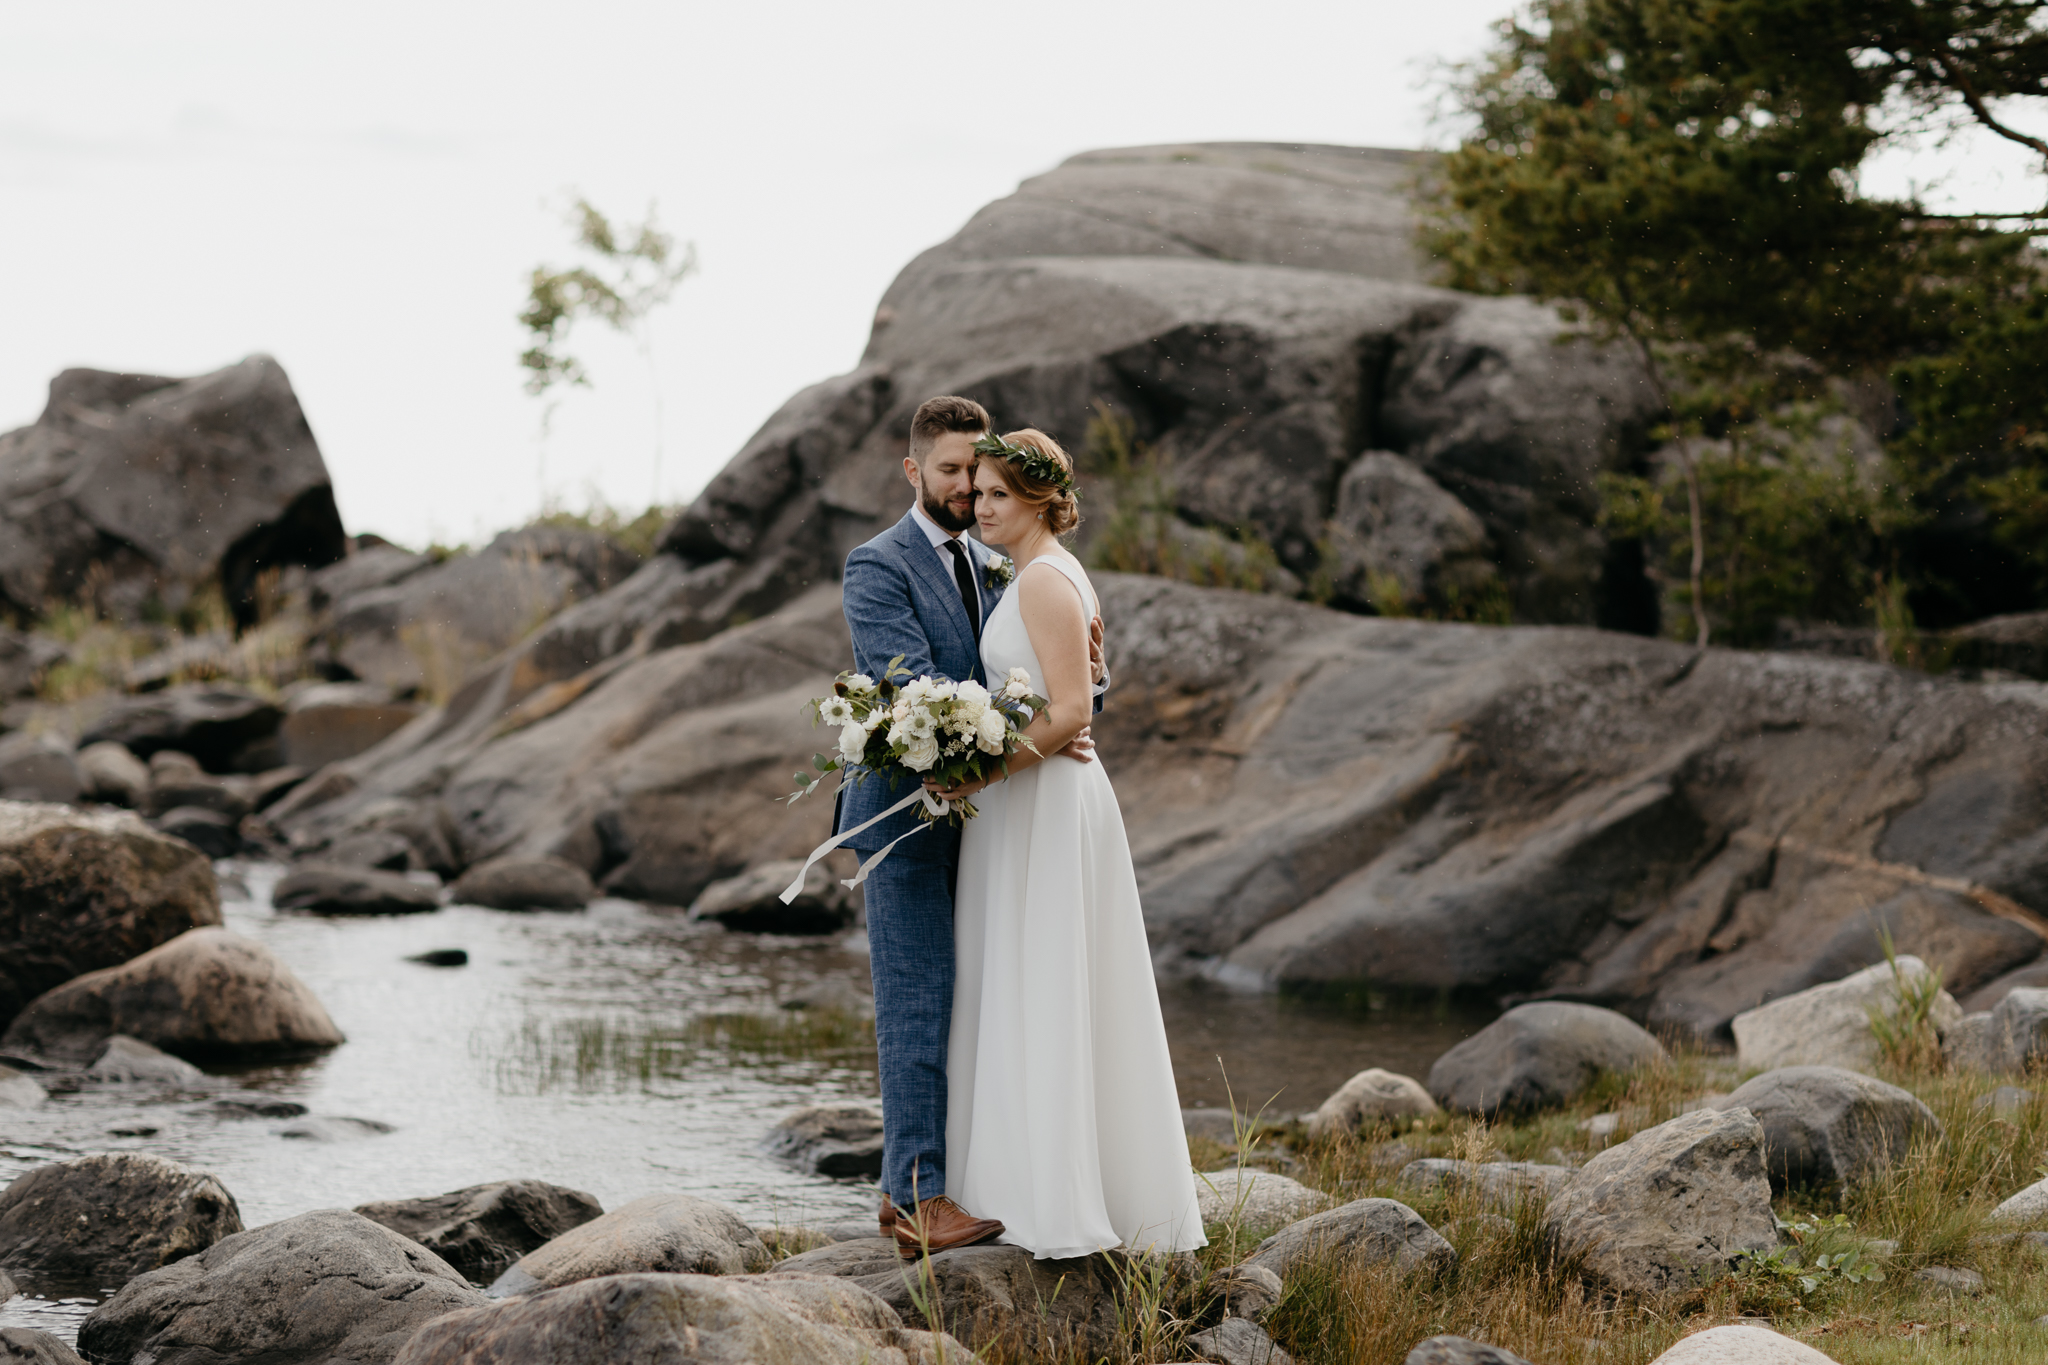 Vilhelmiina + Mark | Photo by Patrick Karkkolainen Wedding Photographer | Helsinki Wedding Photographer-151.jpg